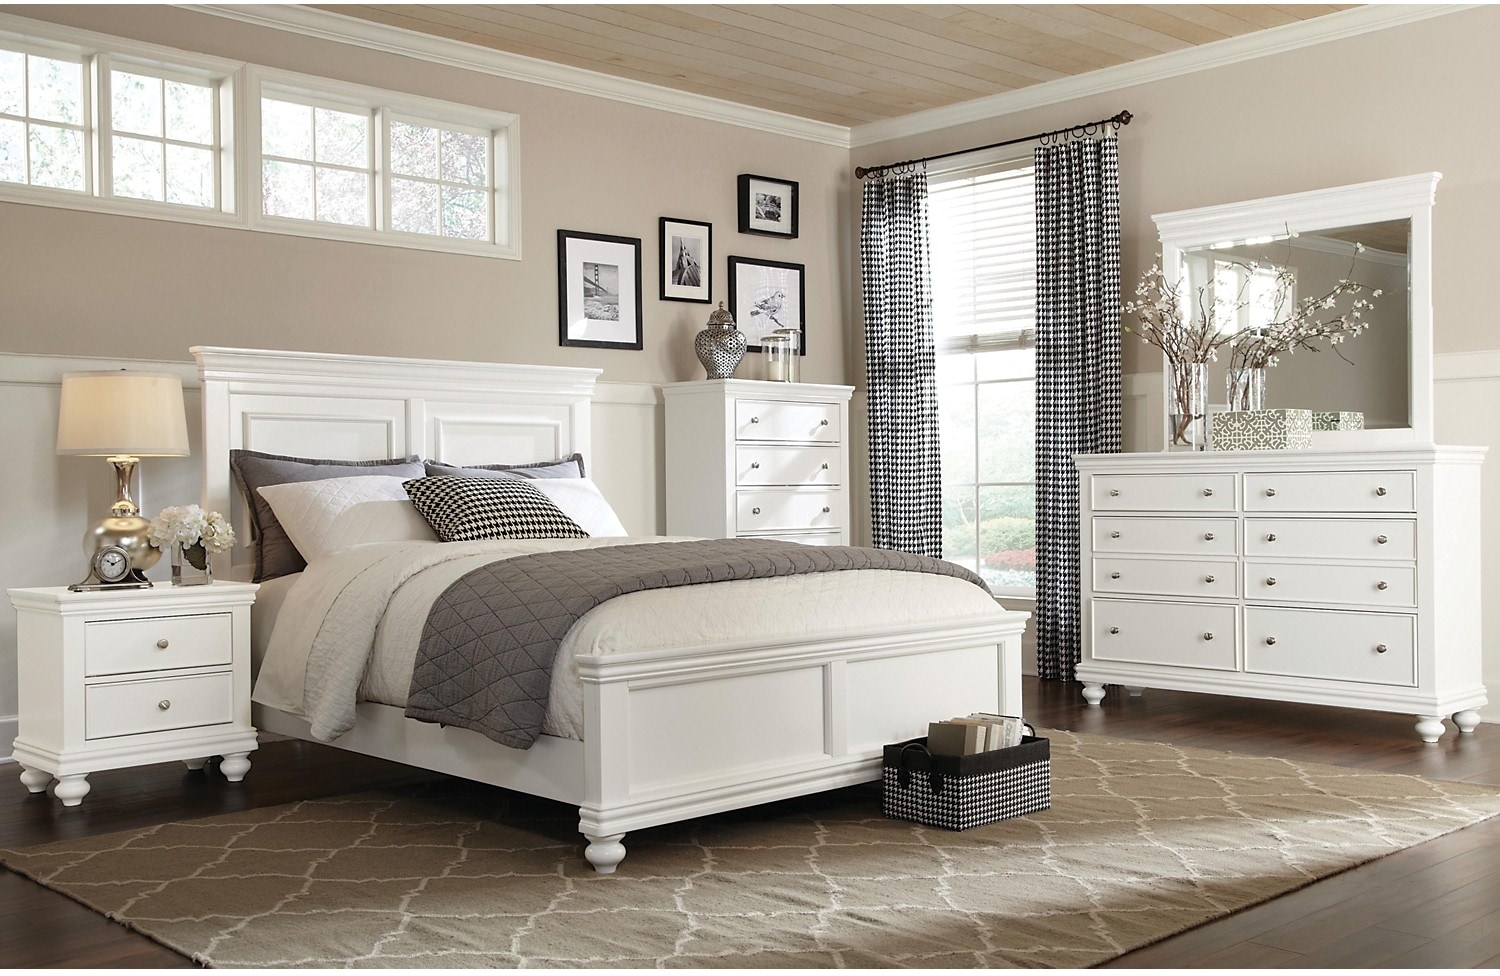 Bedroom Furniture - Bridgeport 5-Piece King Bedroom Set – White